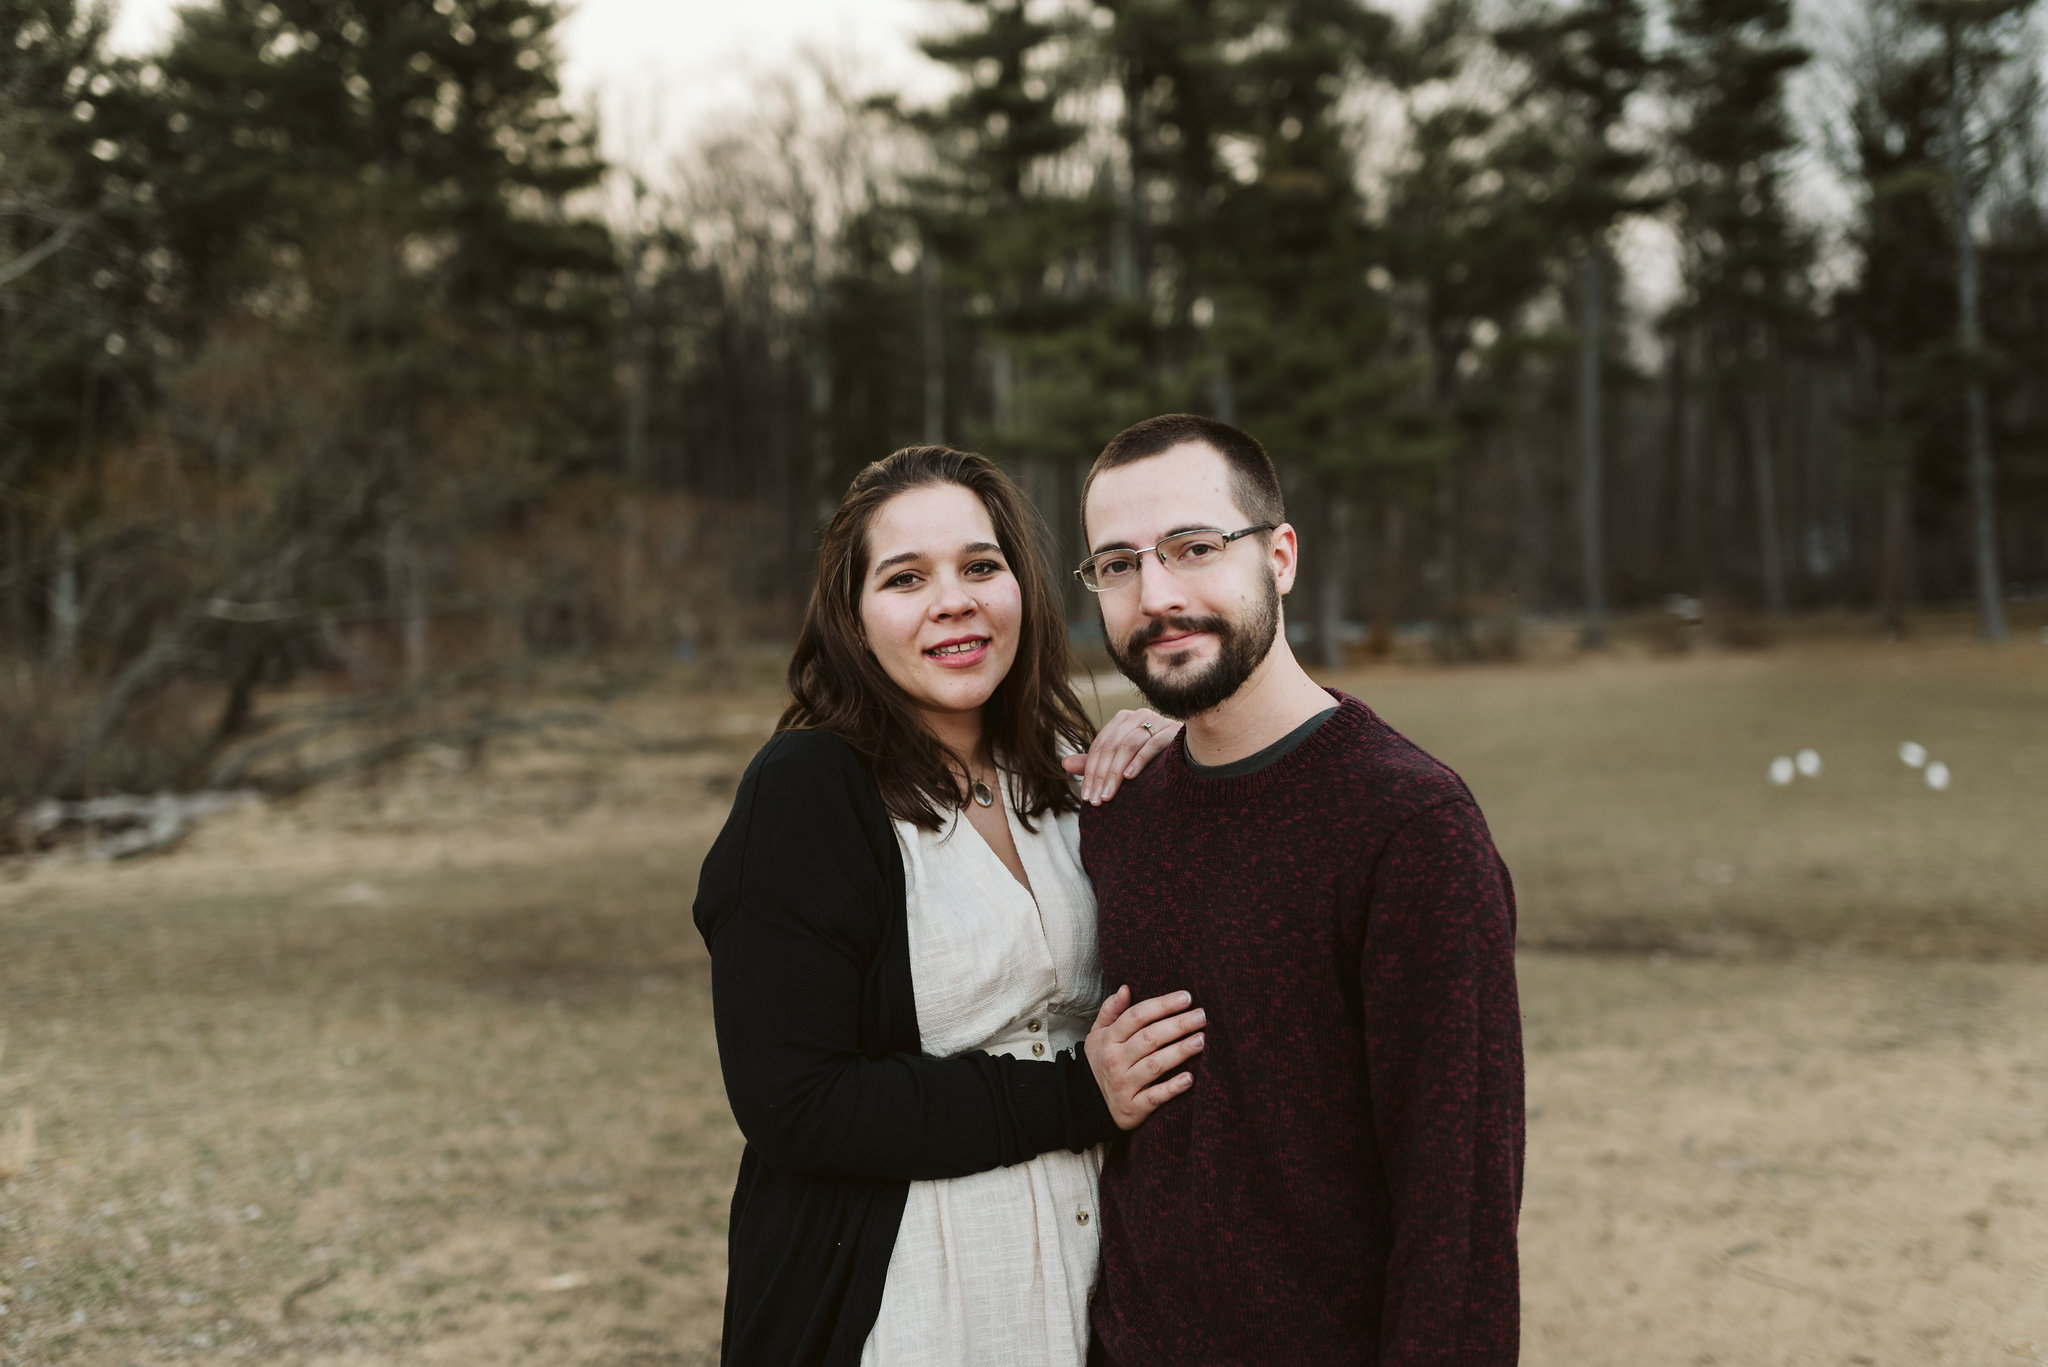 Baltimore County, Loch Raven Reservoir, Maryland Wedding Photographer, Winter, Engagement Photos, Nature, Romantic, Clean and Classic, Portrait of Bride and Groom, Laid Back